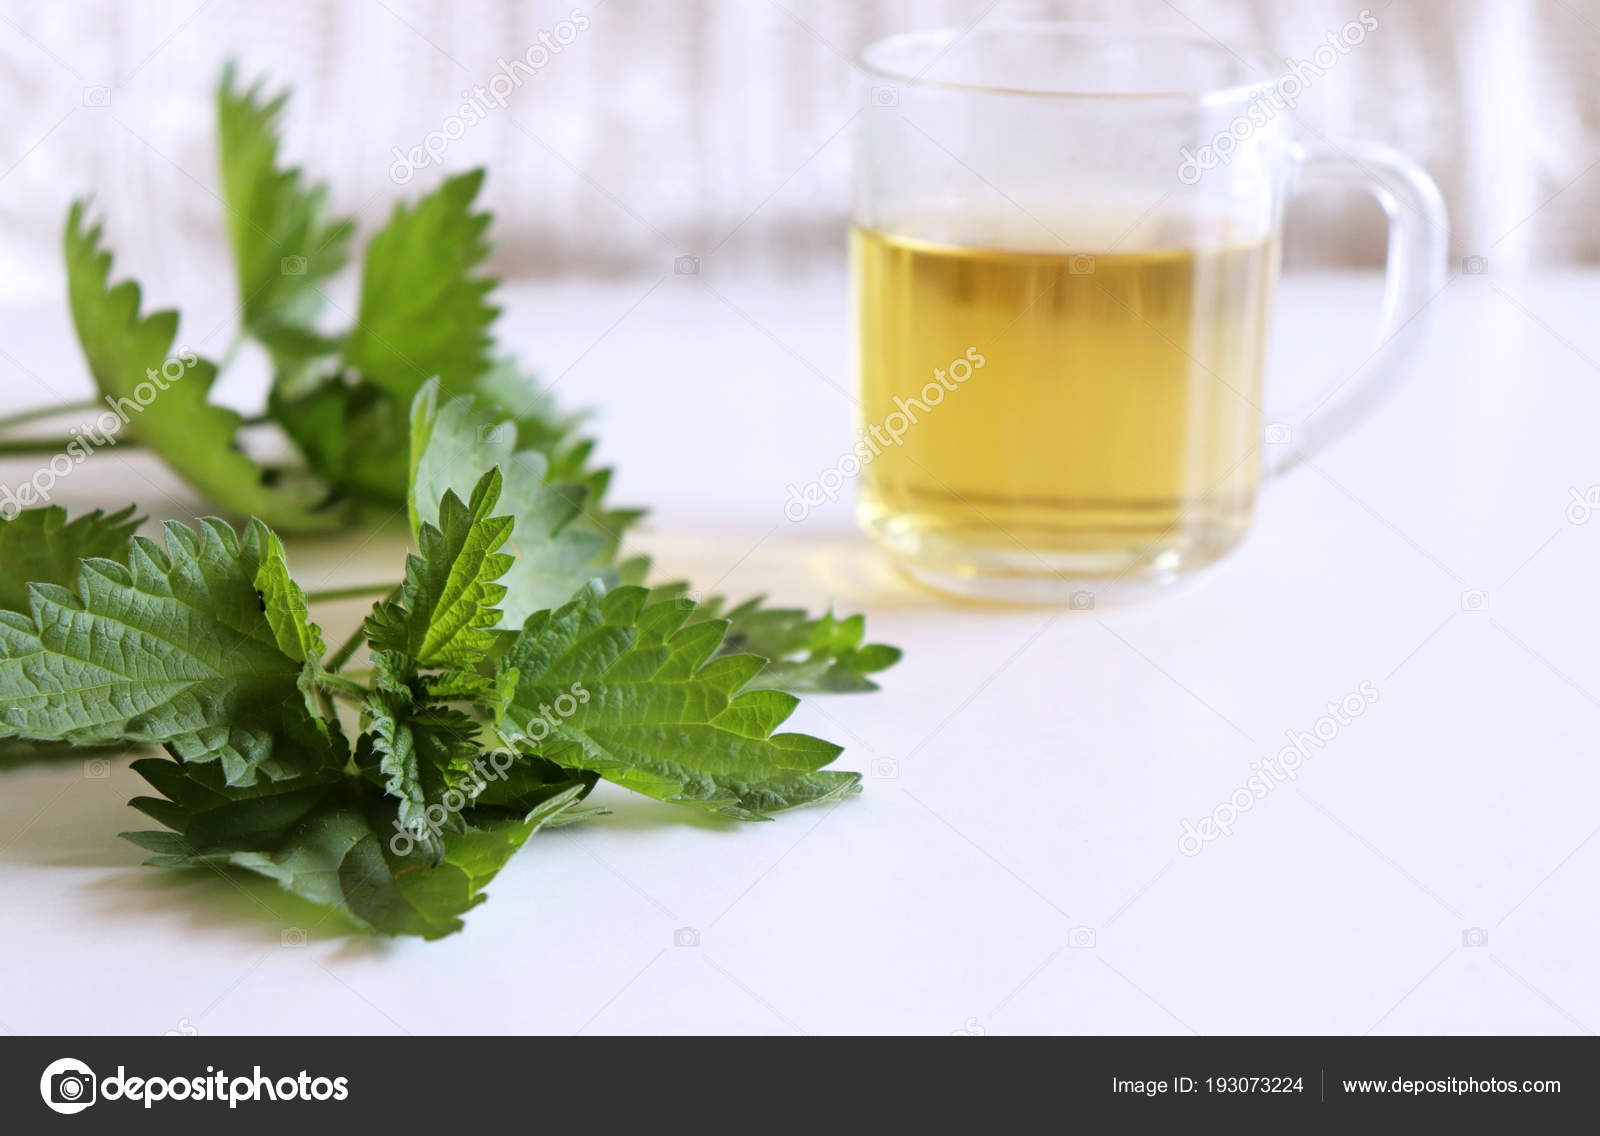 Leaves of fresh green nettle and a